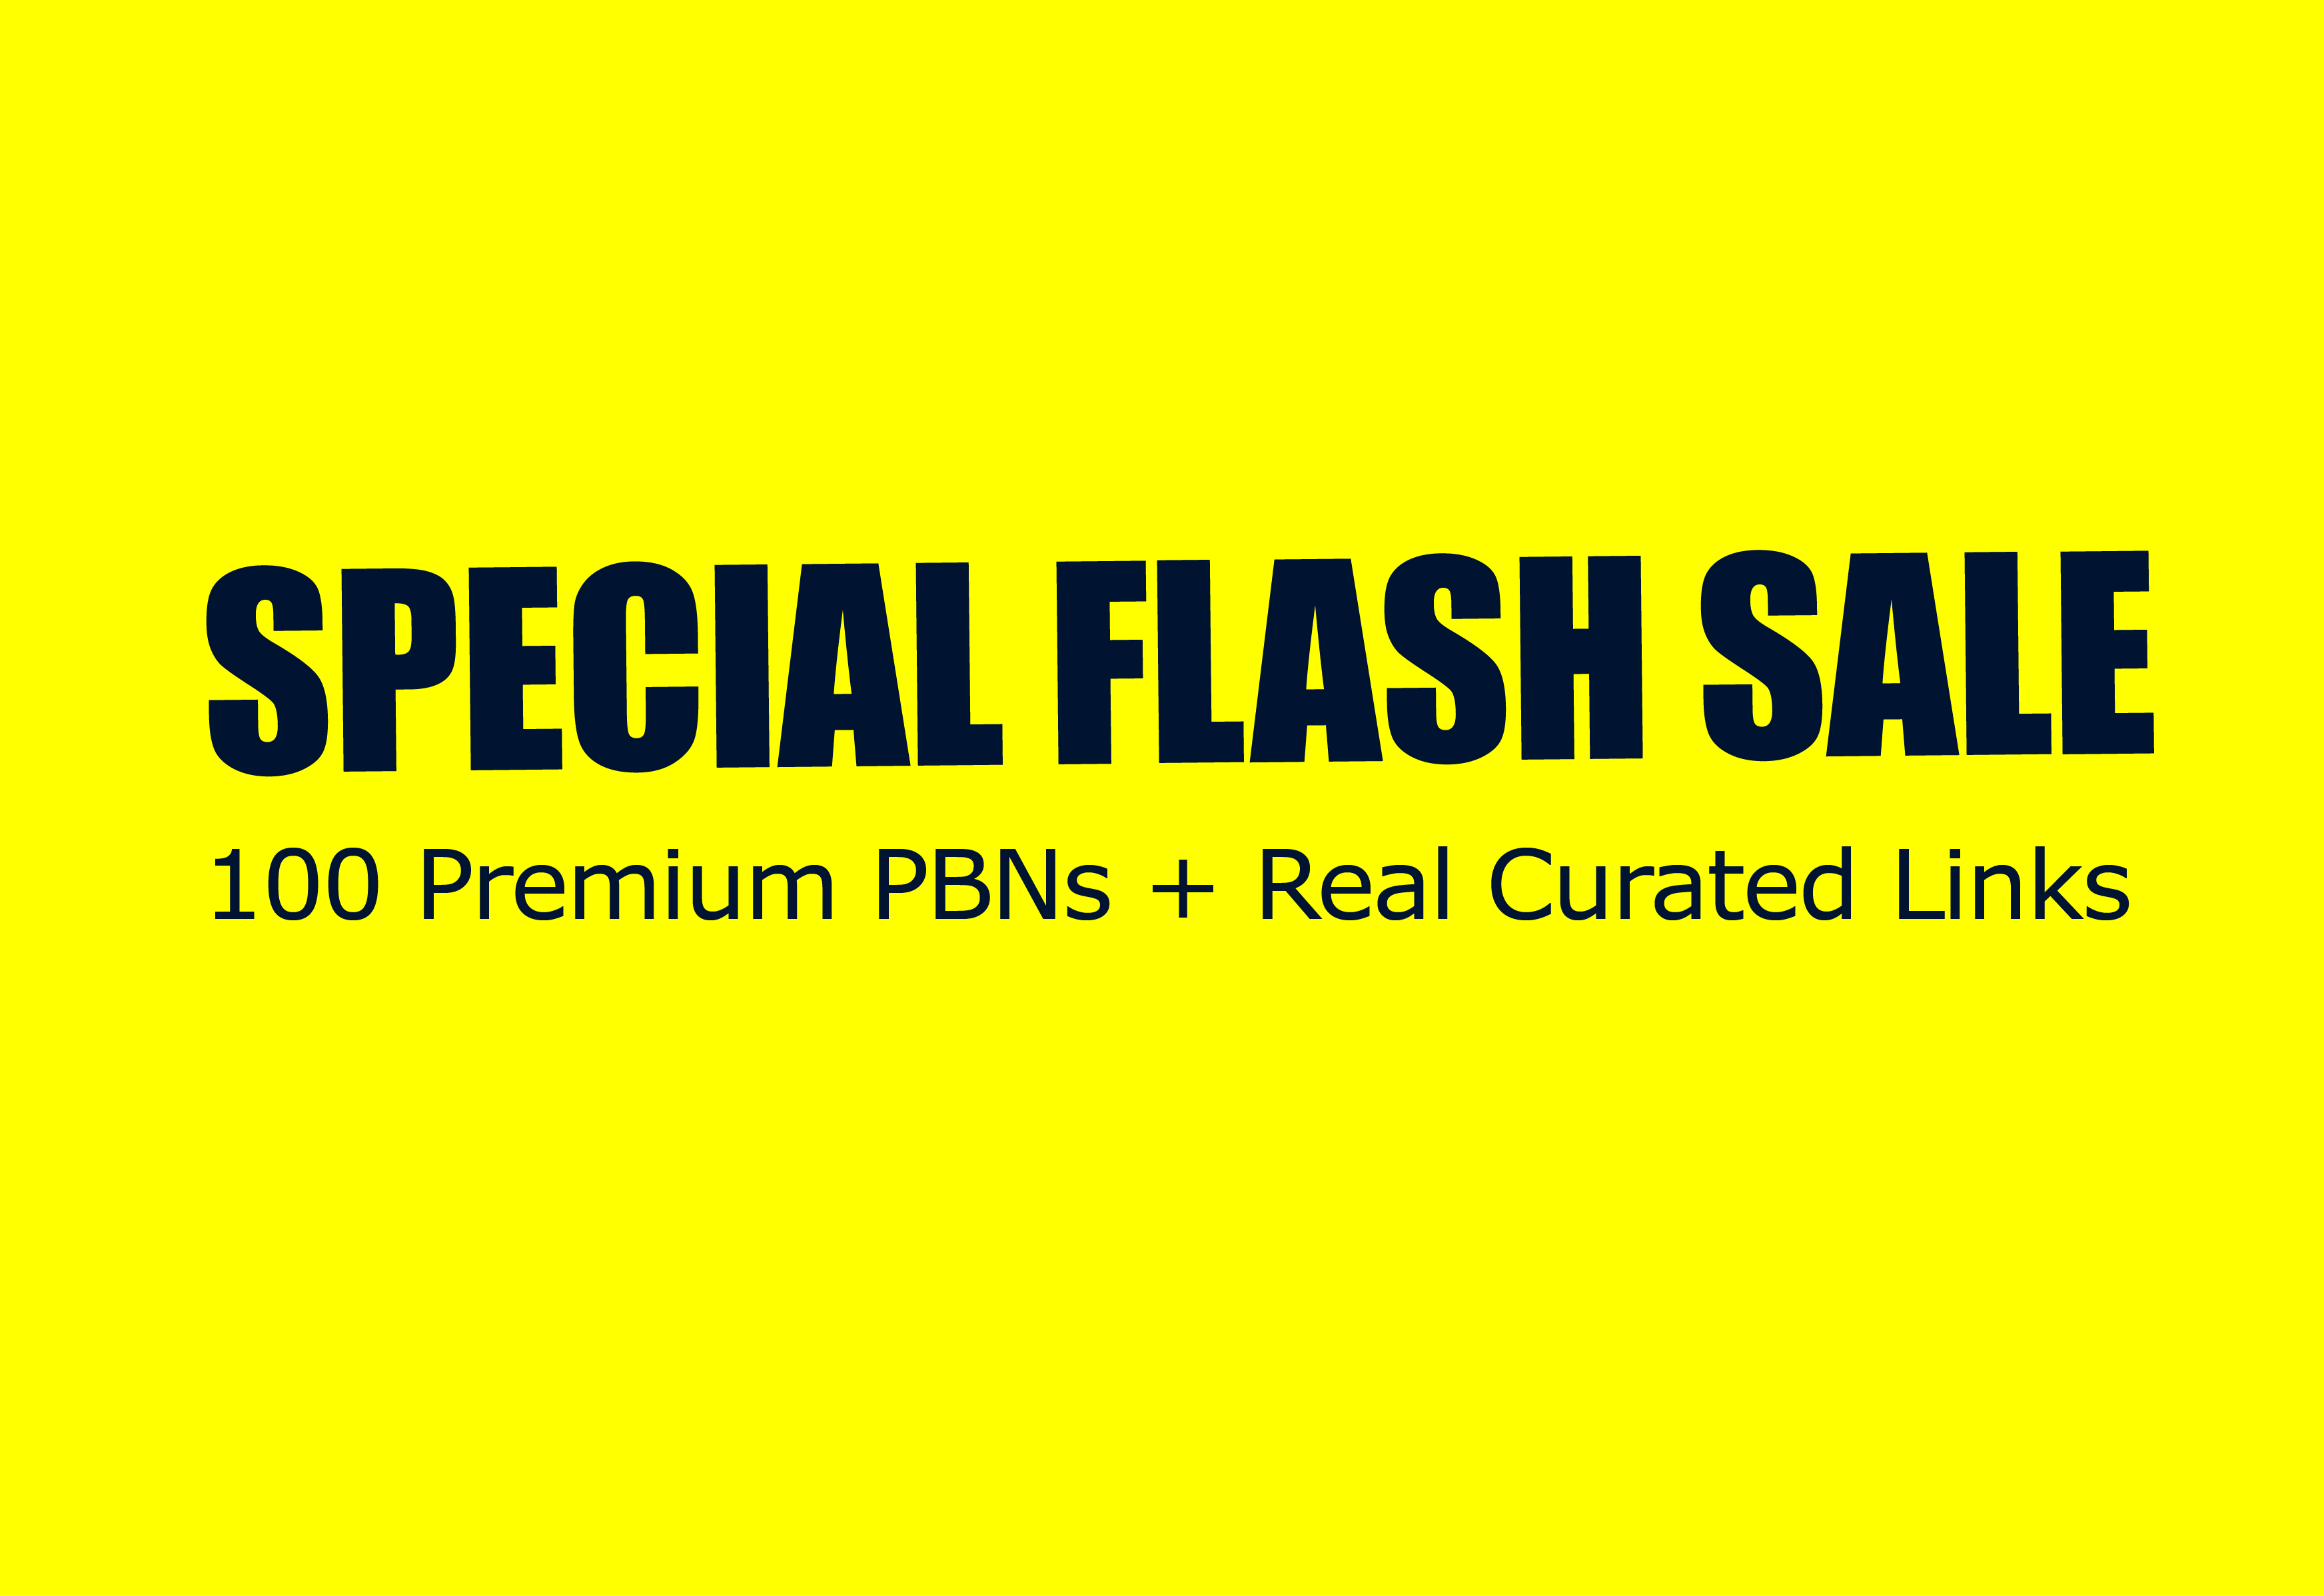 Monster SEO,  50 Premium PBNs Post,  With 10 Real Curated Links in Extras - Special Flash Sale